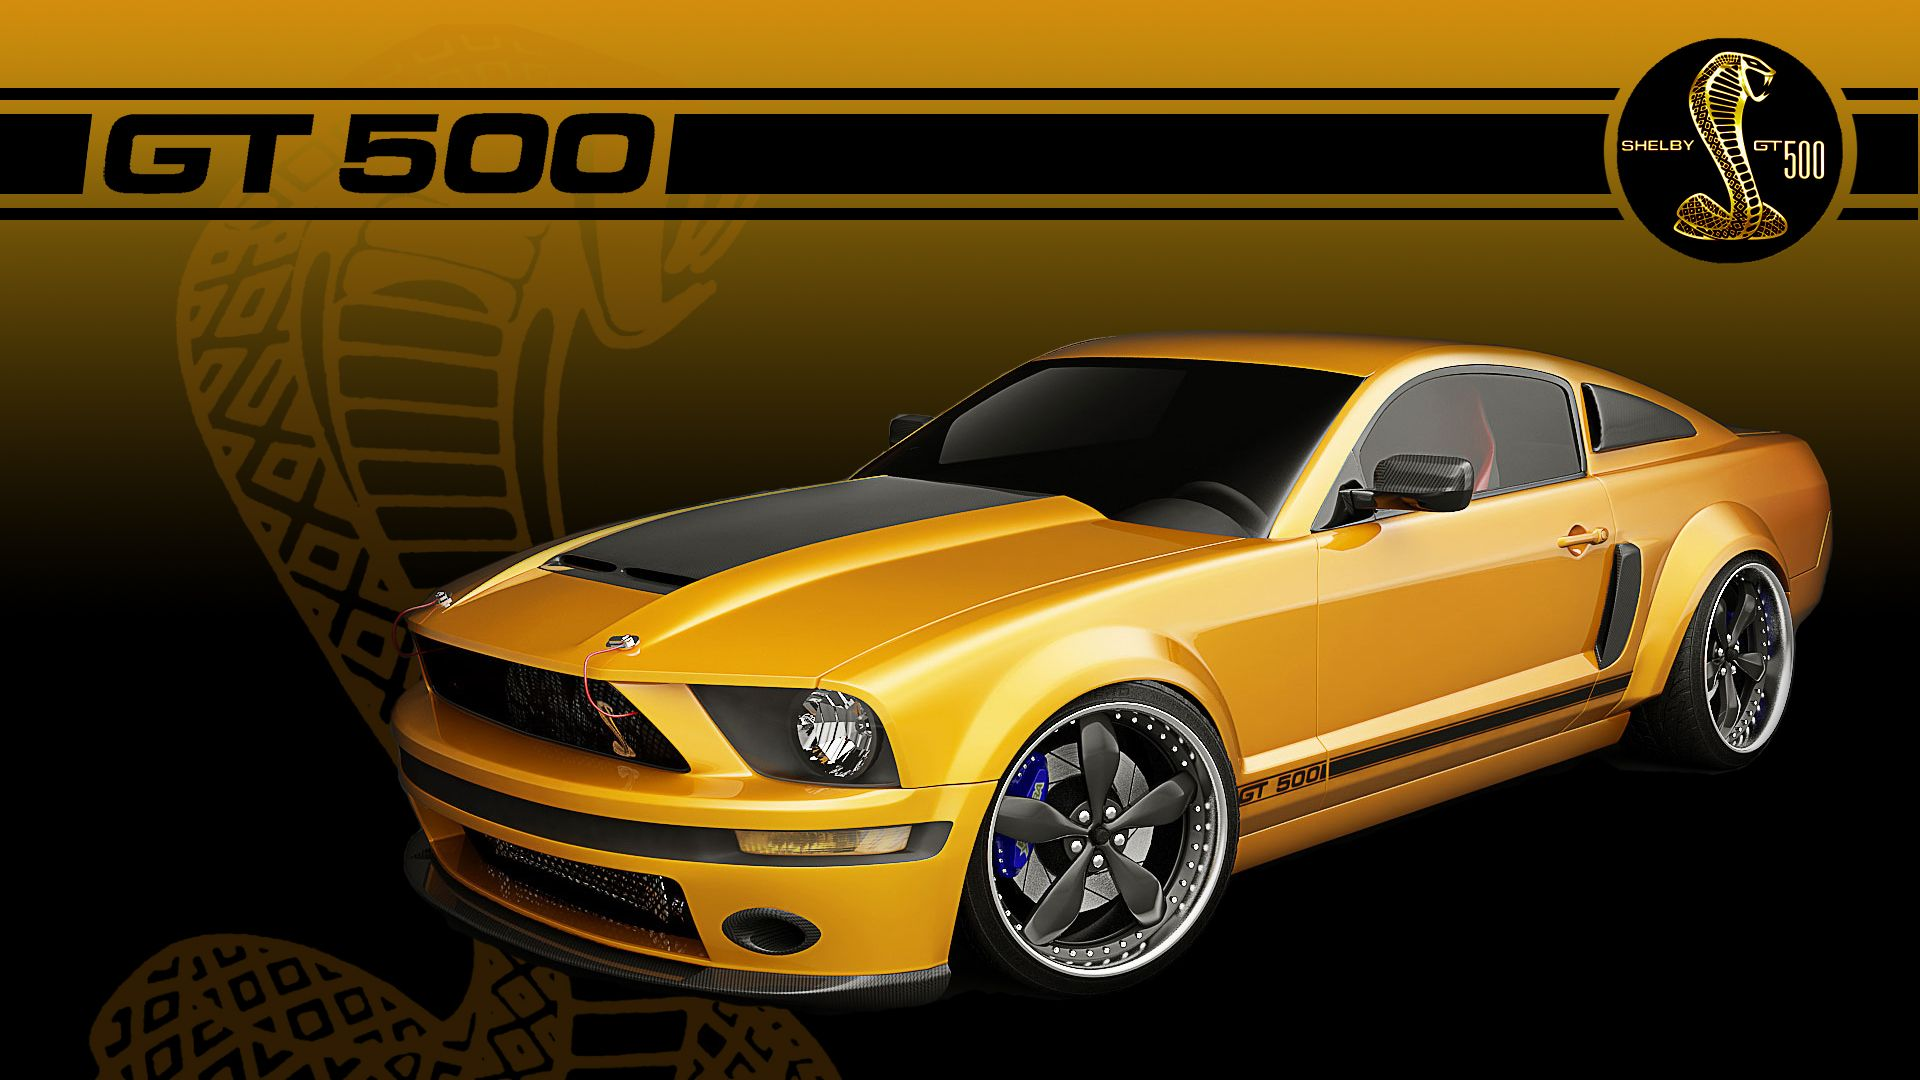 Yellow mustang shelby shelby gt500 yellow adyp ford gt500 mustang shelby yellow free